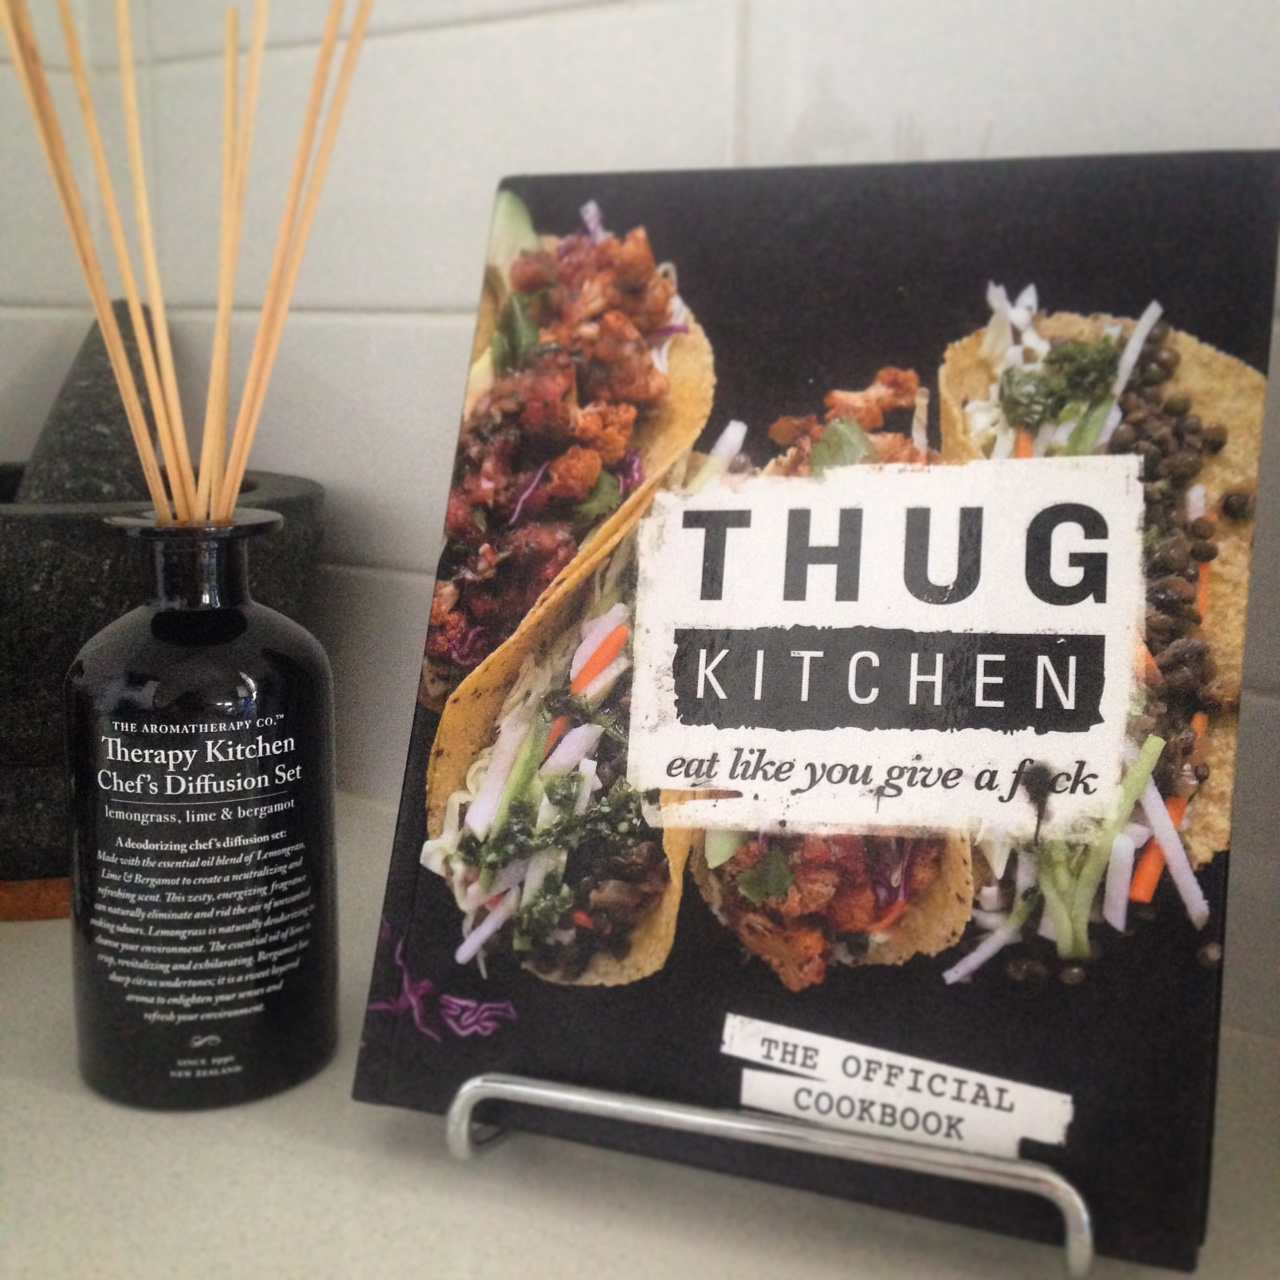 Thug Kitchen started as a blog in 2012. Authors Michelle Davis and